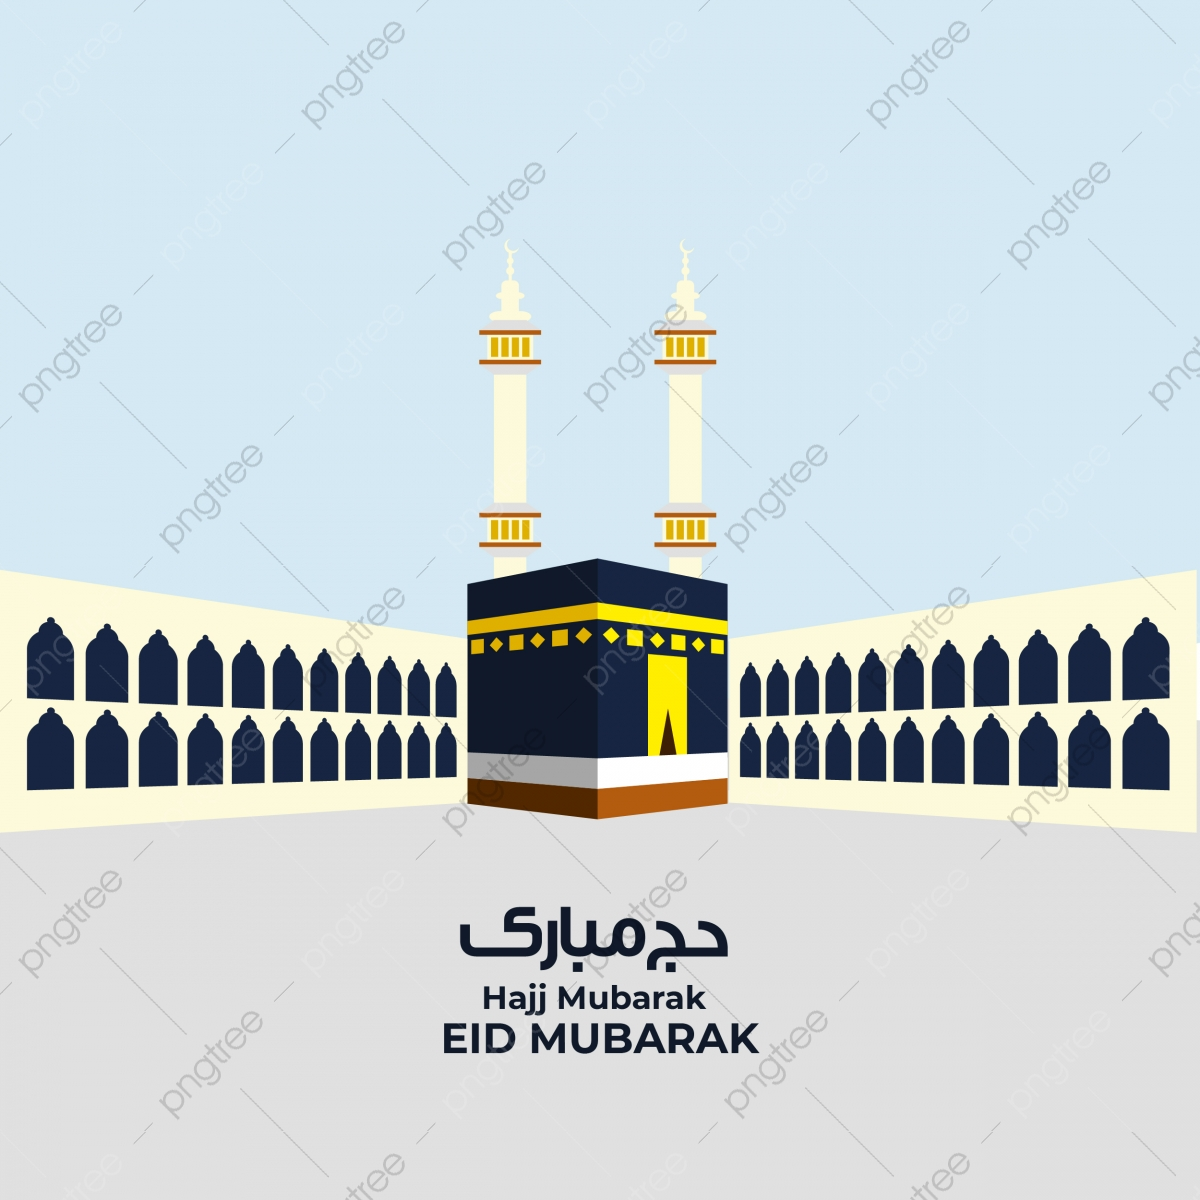 kabah png images vector and psd files free download on pngtree https pngtree com freepng hajj eid al adha kaaba mecca vector illustration islamic pilgrimage 5390595 html